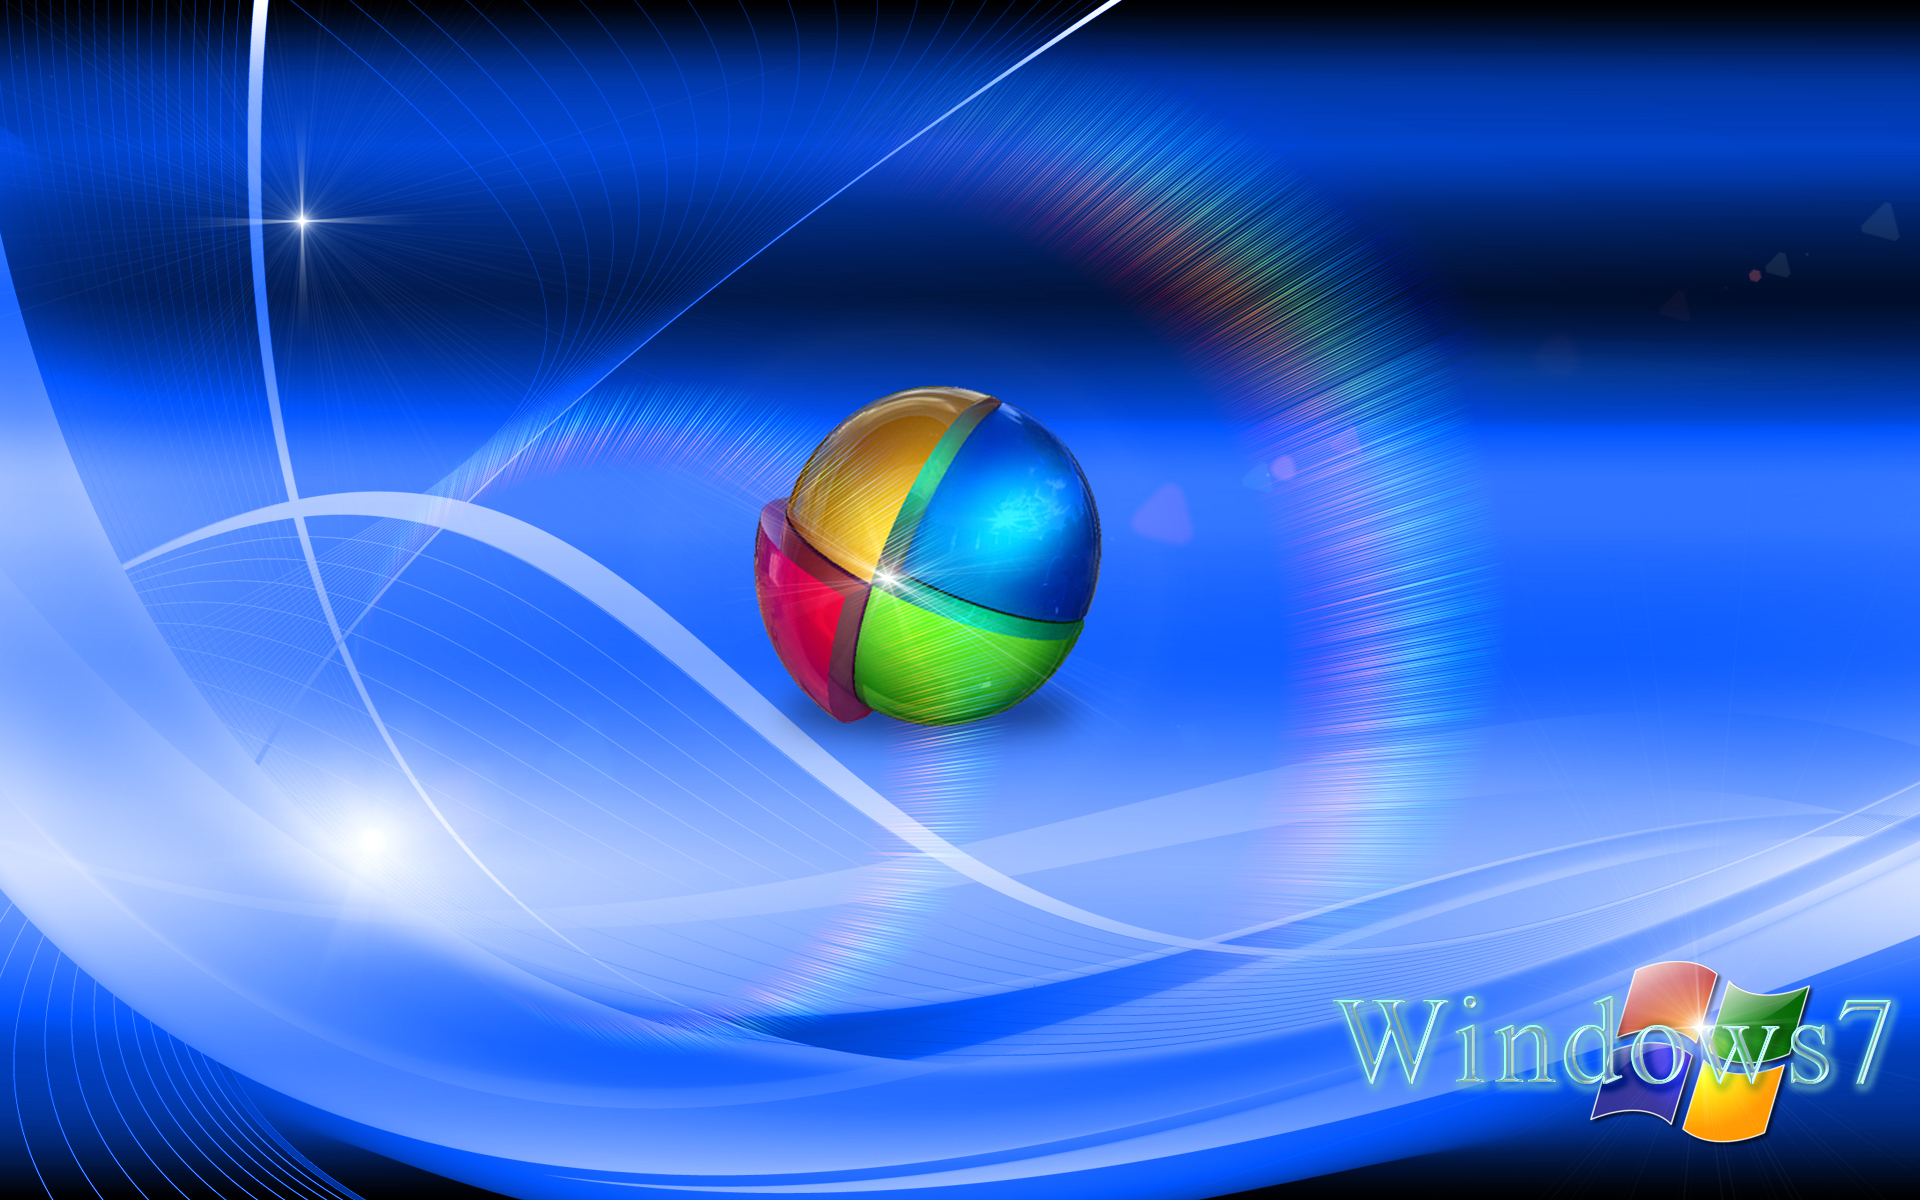 Windows7 Wall By Kubines On DeviantArt